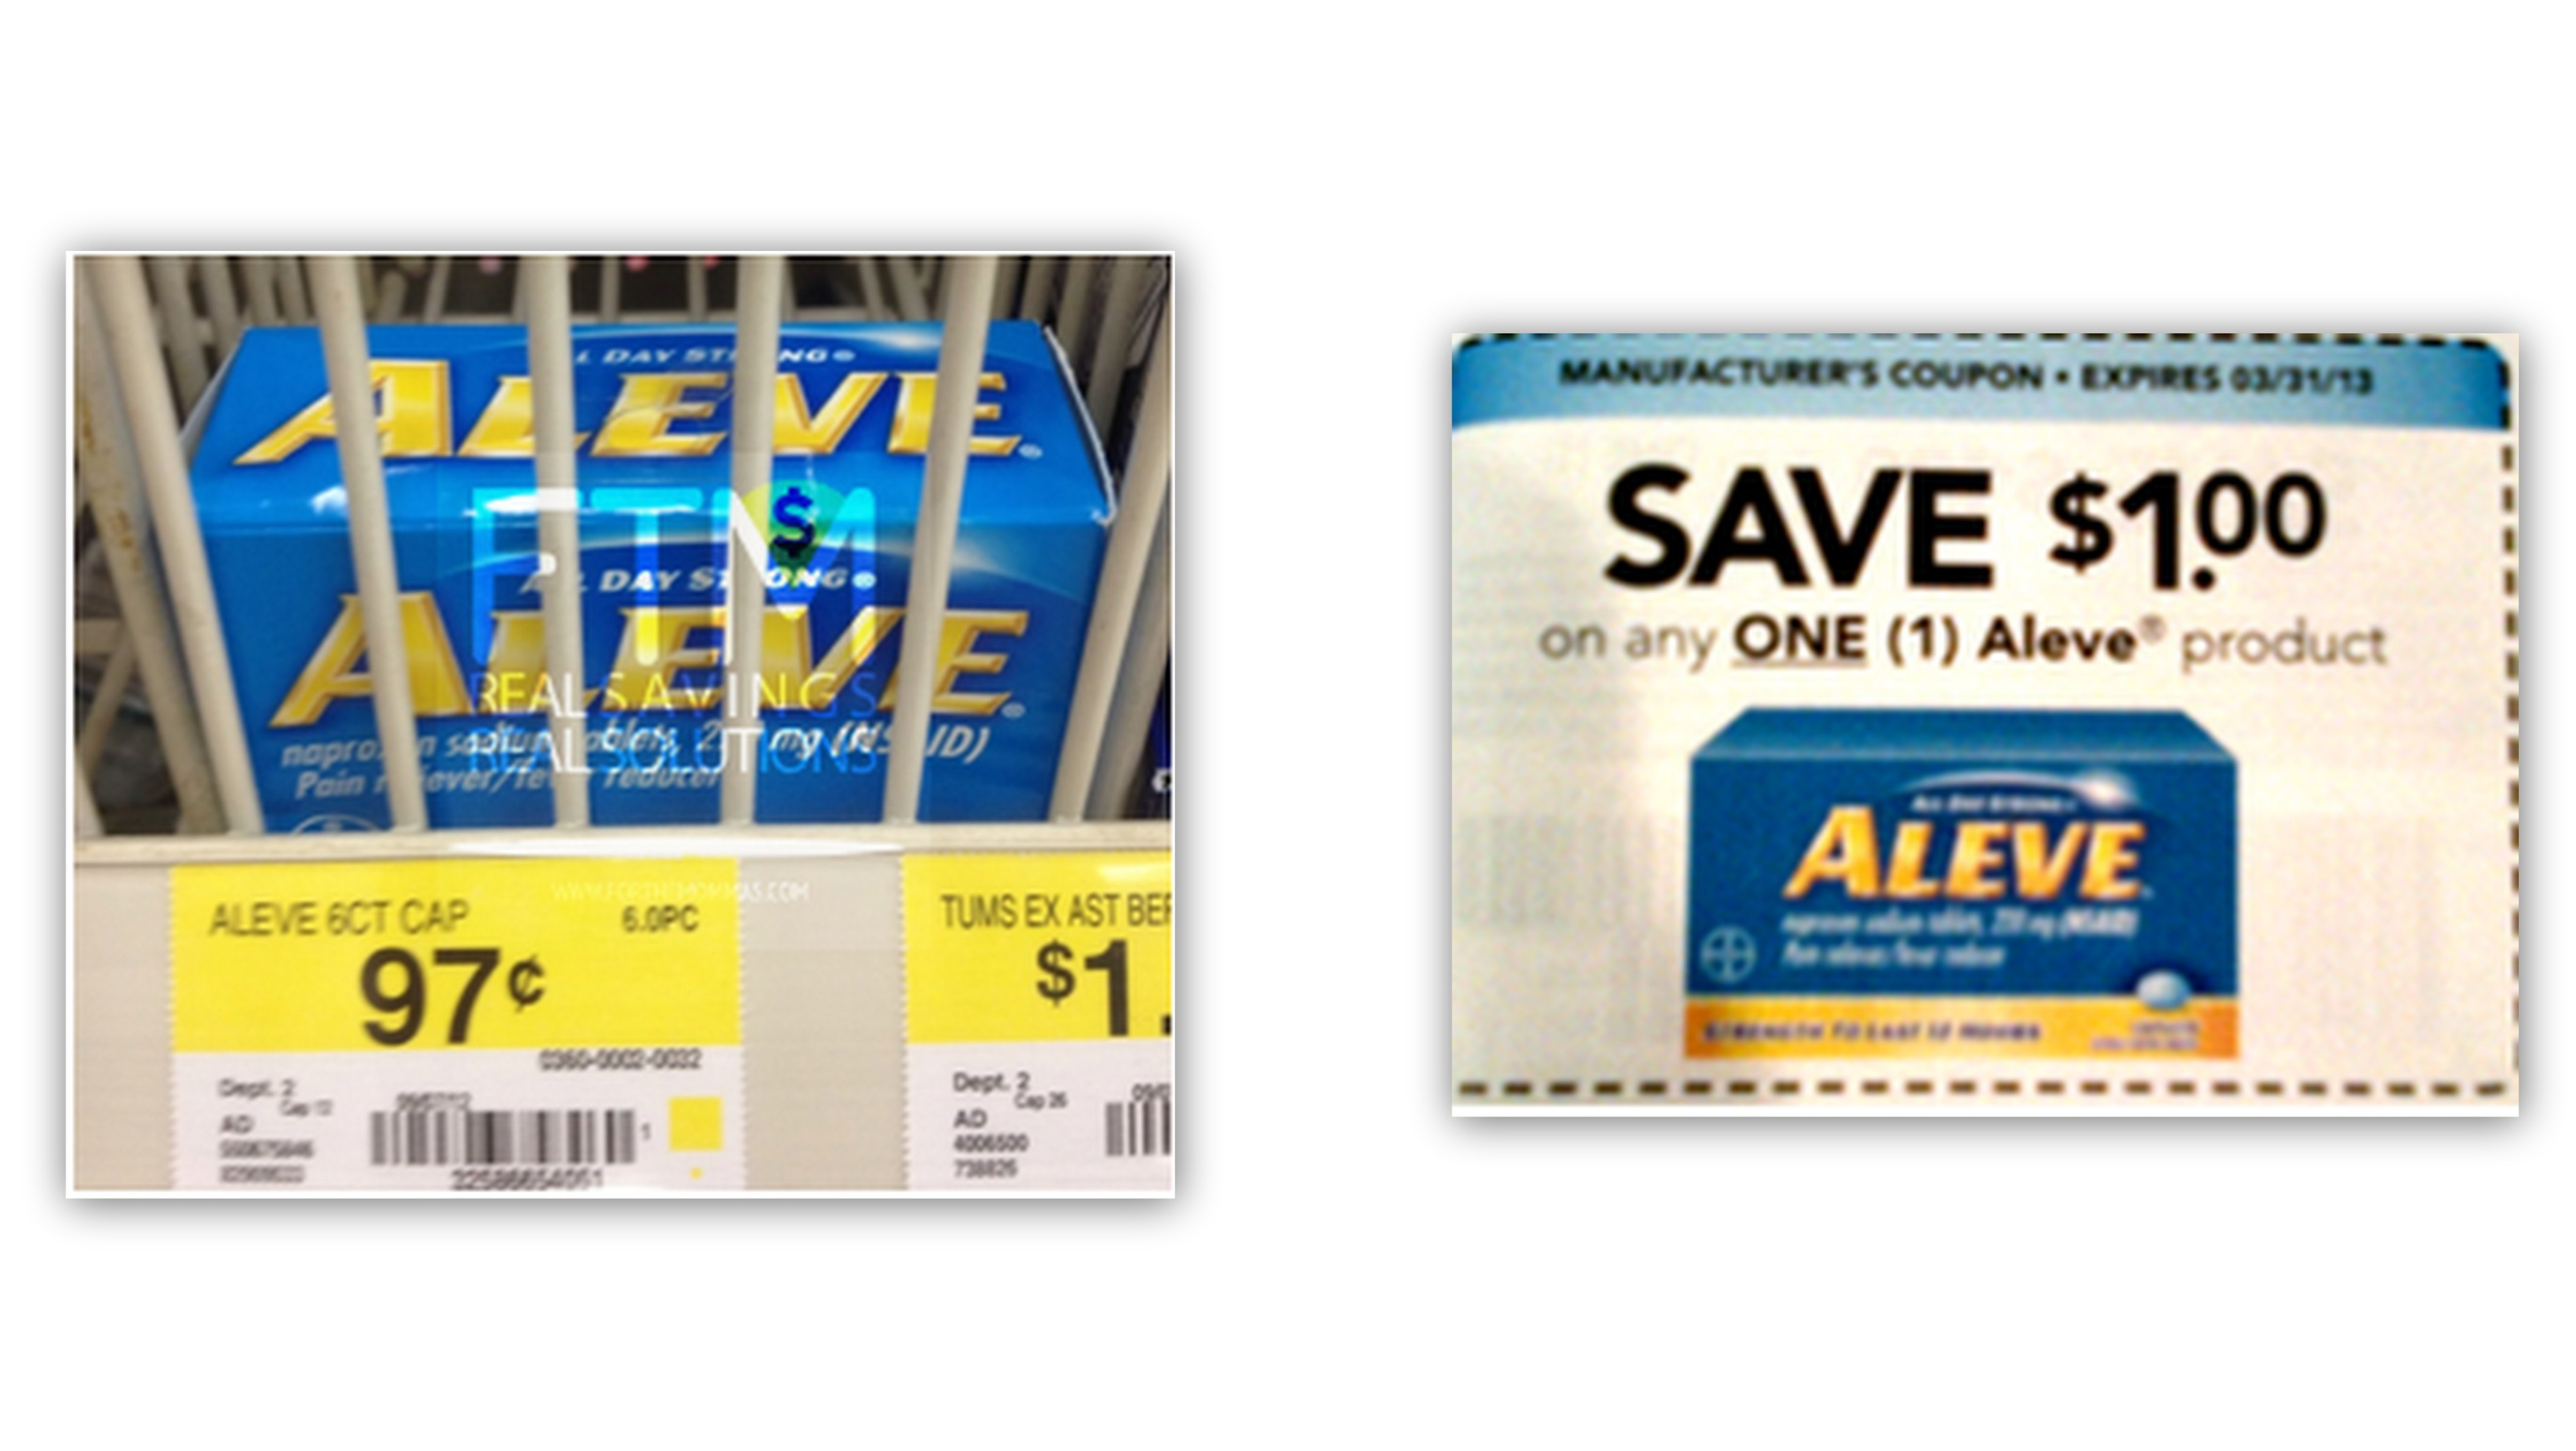 January All You Magazine | FREE Aleve Trial Size at Walmart